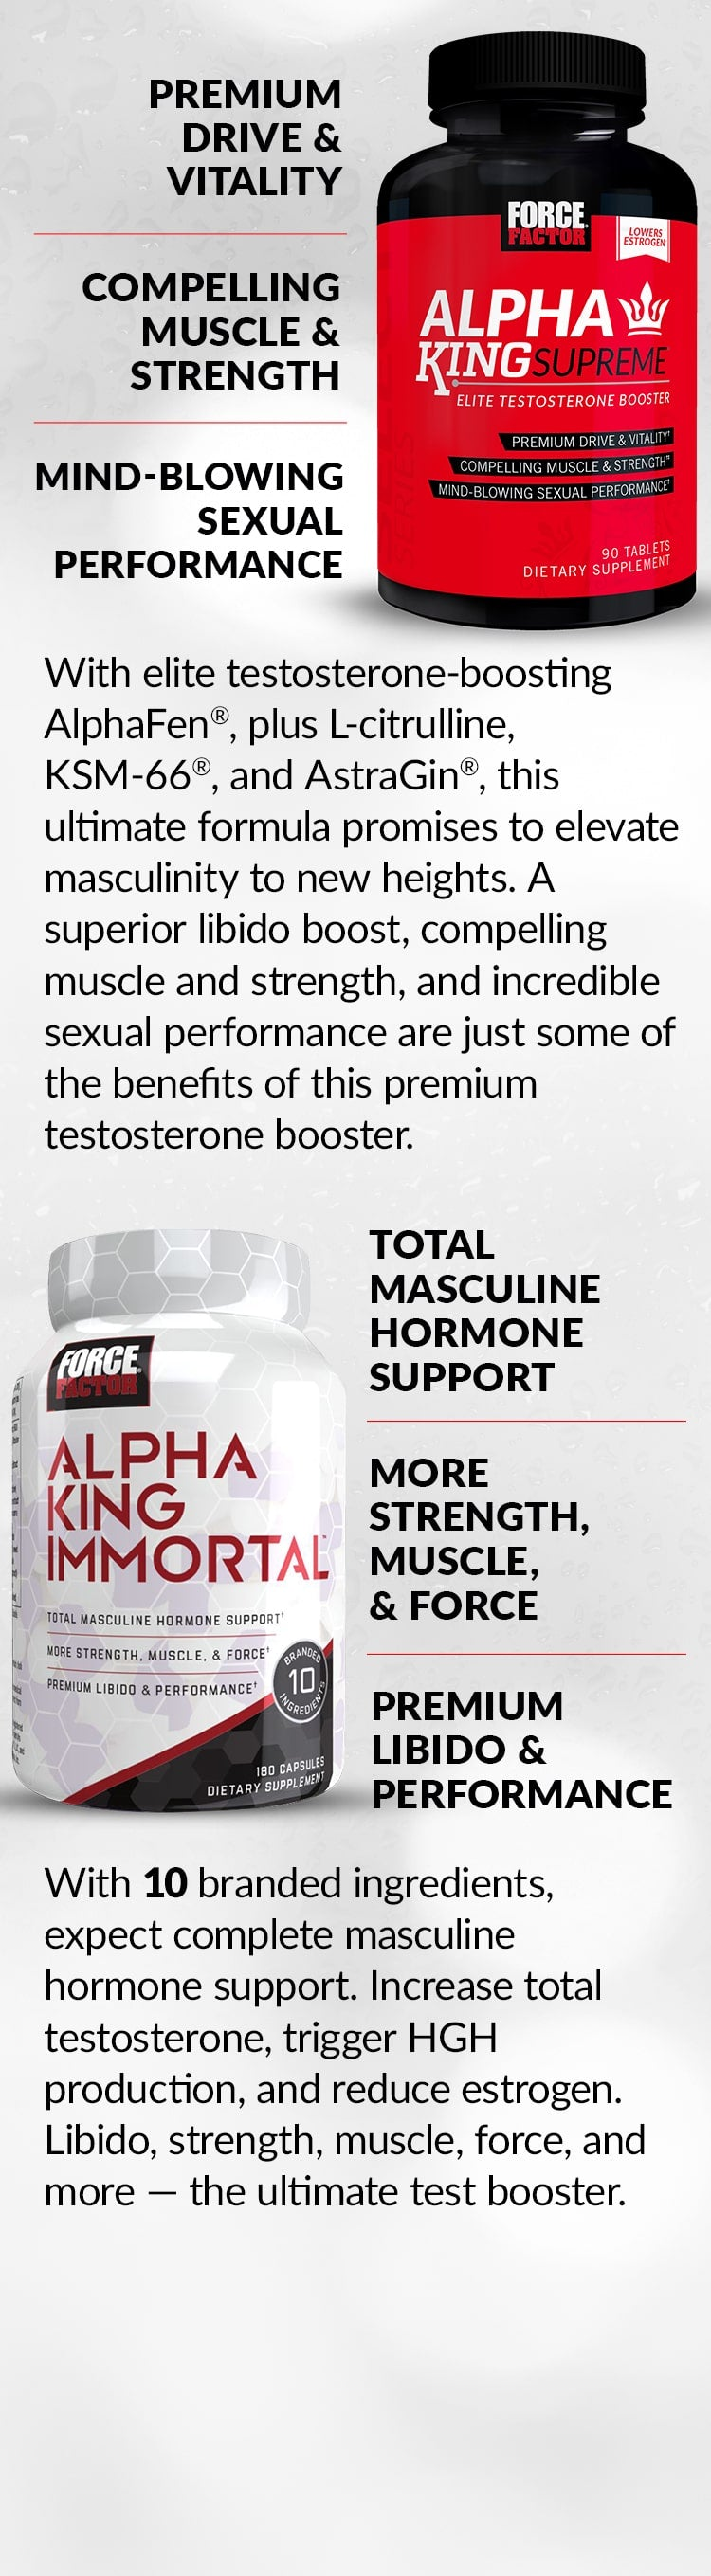 Alpha King Supreme® - PREMIUM DRIVE & VITALITY, COMPELLING MUSCLE & STRENGTH, MIND-BLOWING SEXUAL PERFORMANCE. With elite testosterone-boosting AlphaFen®, plus L-citrulline, KSM-66®, and AstraGin®, this ultimate formula promises to elevate masculinity to new heights. A superior libido boost, compelling muscle and strength, and incredible sexual performance are just some of the benefits of this premium testosterone booster. Alpha King Immortal® - TOTAL MASCULINE HORMONE SUPPORT, MORE STRENGTH, MUSCLE, & FORCE, PREMIUM LIBIDO & PERFORMANCE. With 10 branded ingredients, expect complete masculine hormone support. Increase total testosterone, trigger HGH production, and reduce estrogen. Libido, strength, muscle, force, and more – the ultimate test booster.